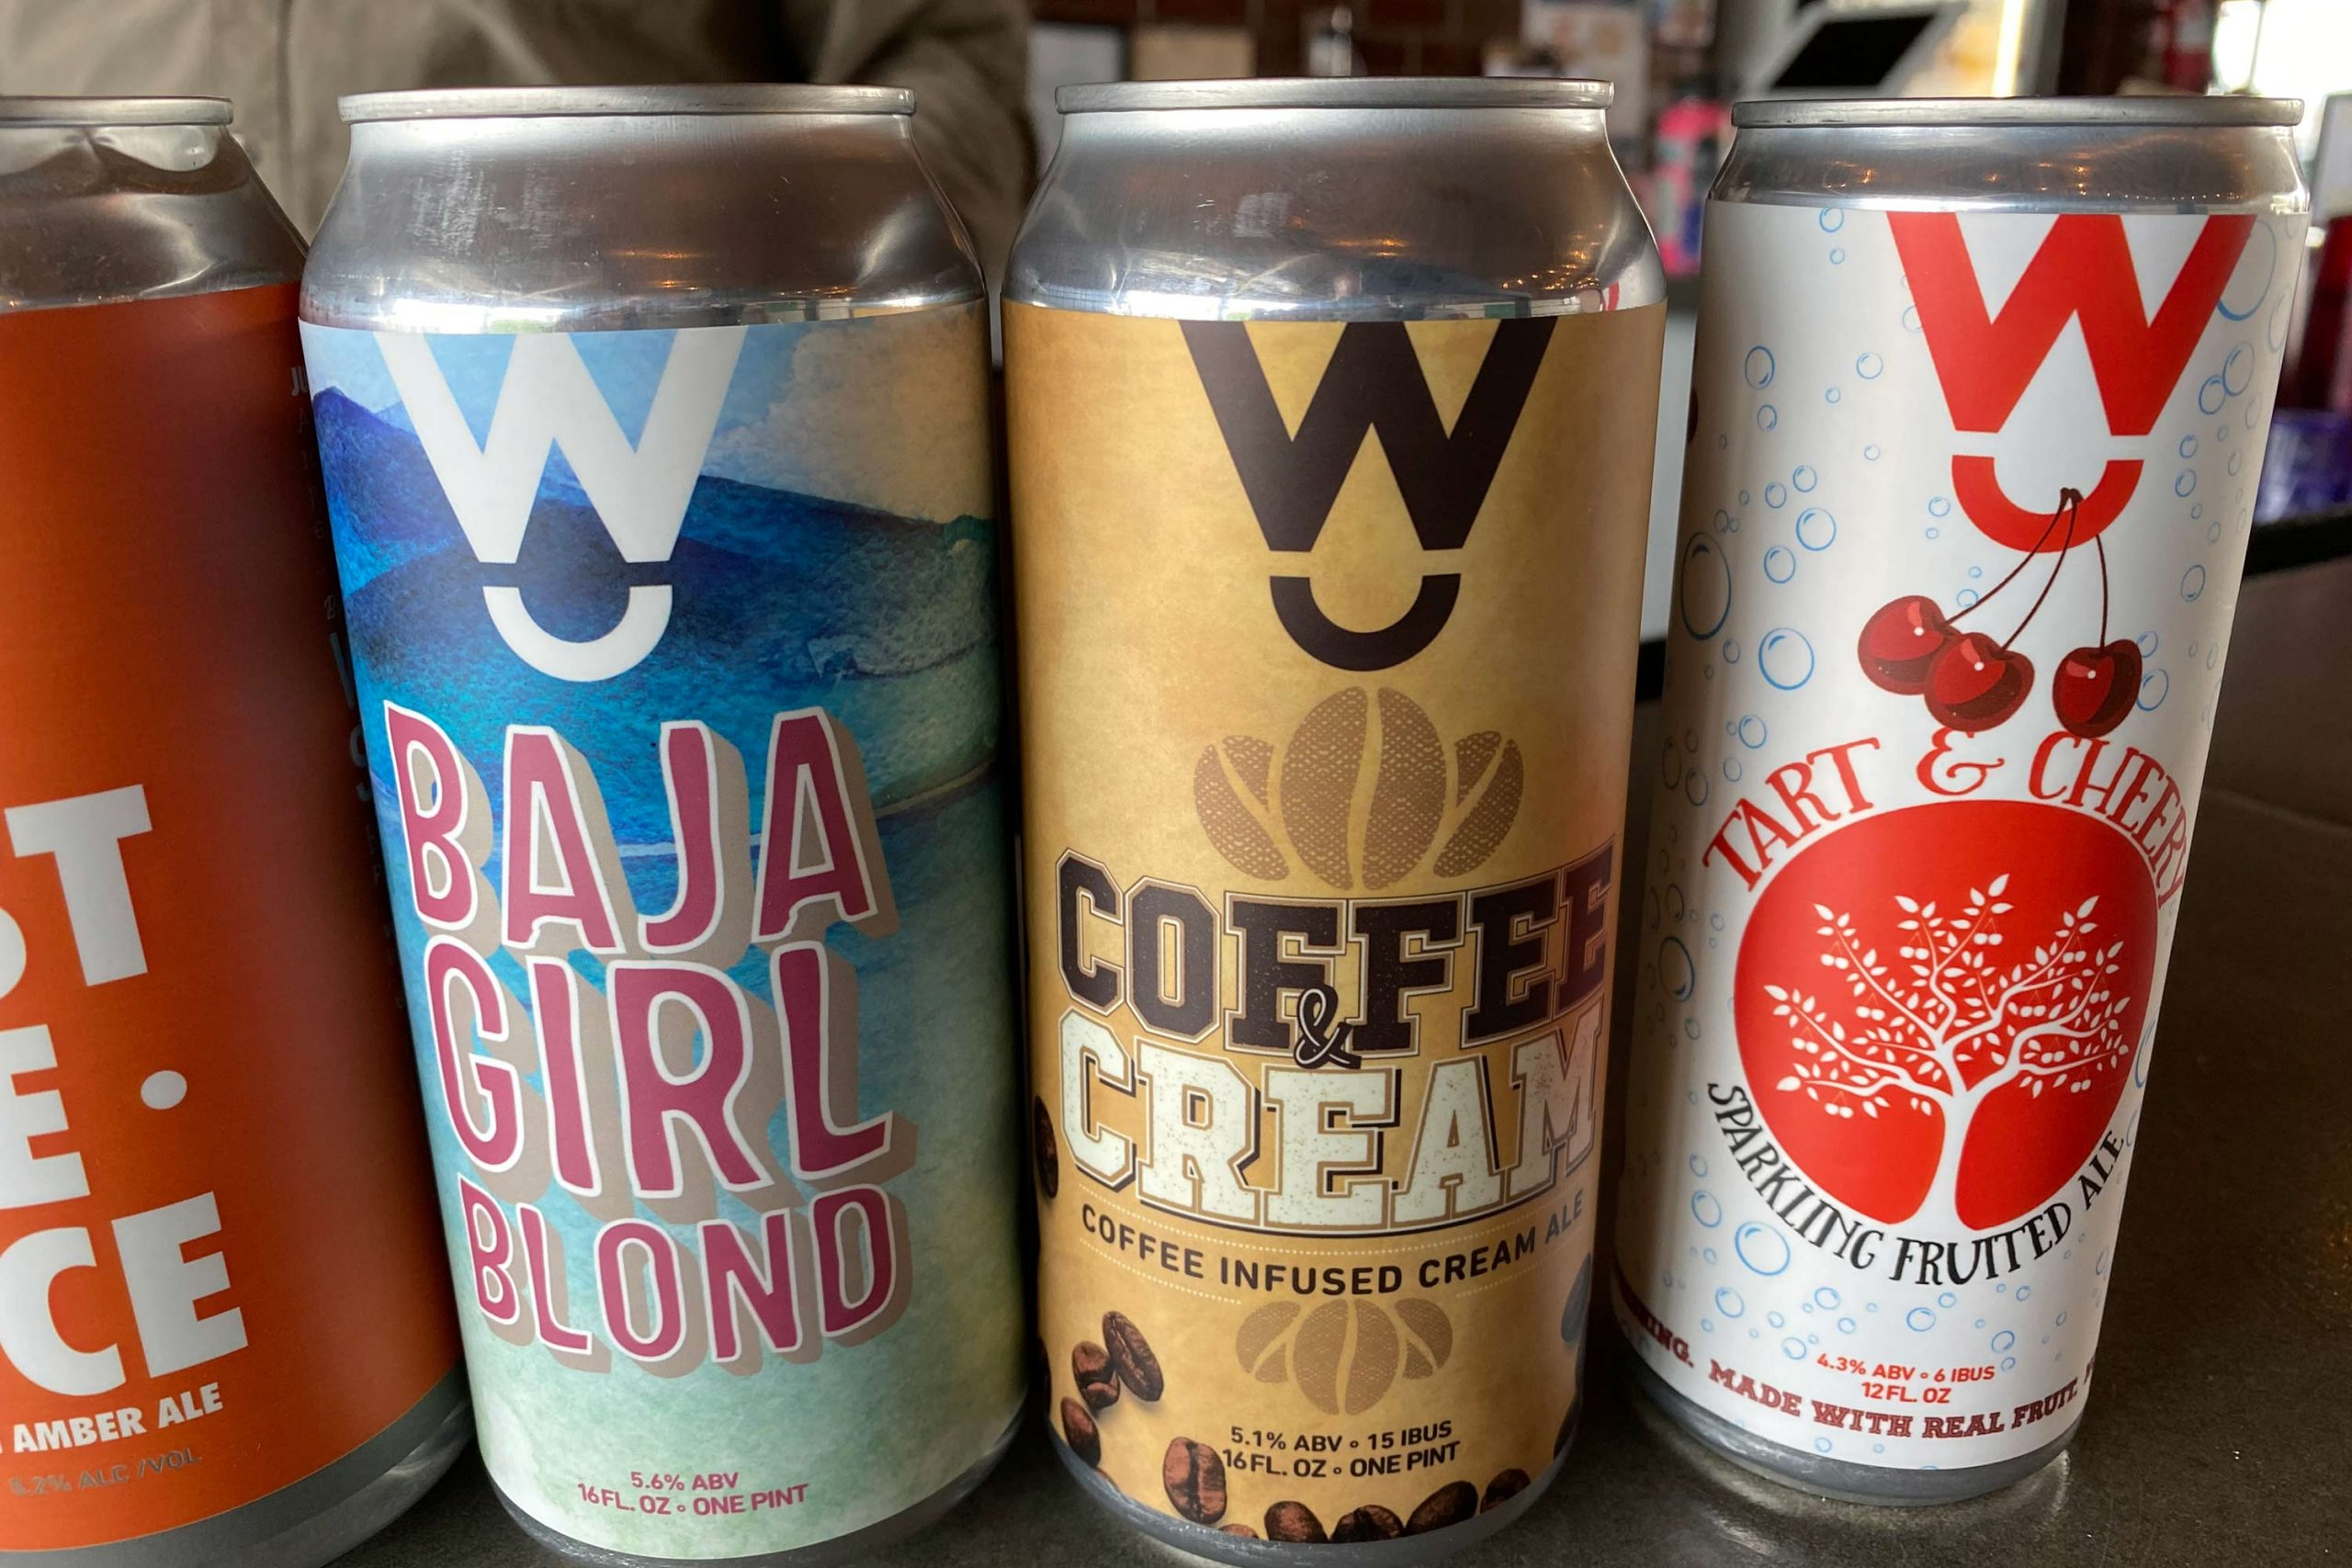 Coffee and Cream coffee infused cream ale from Walter Station Brewery